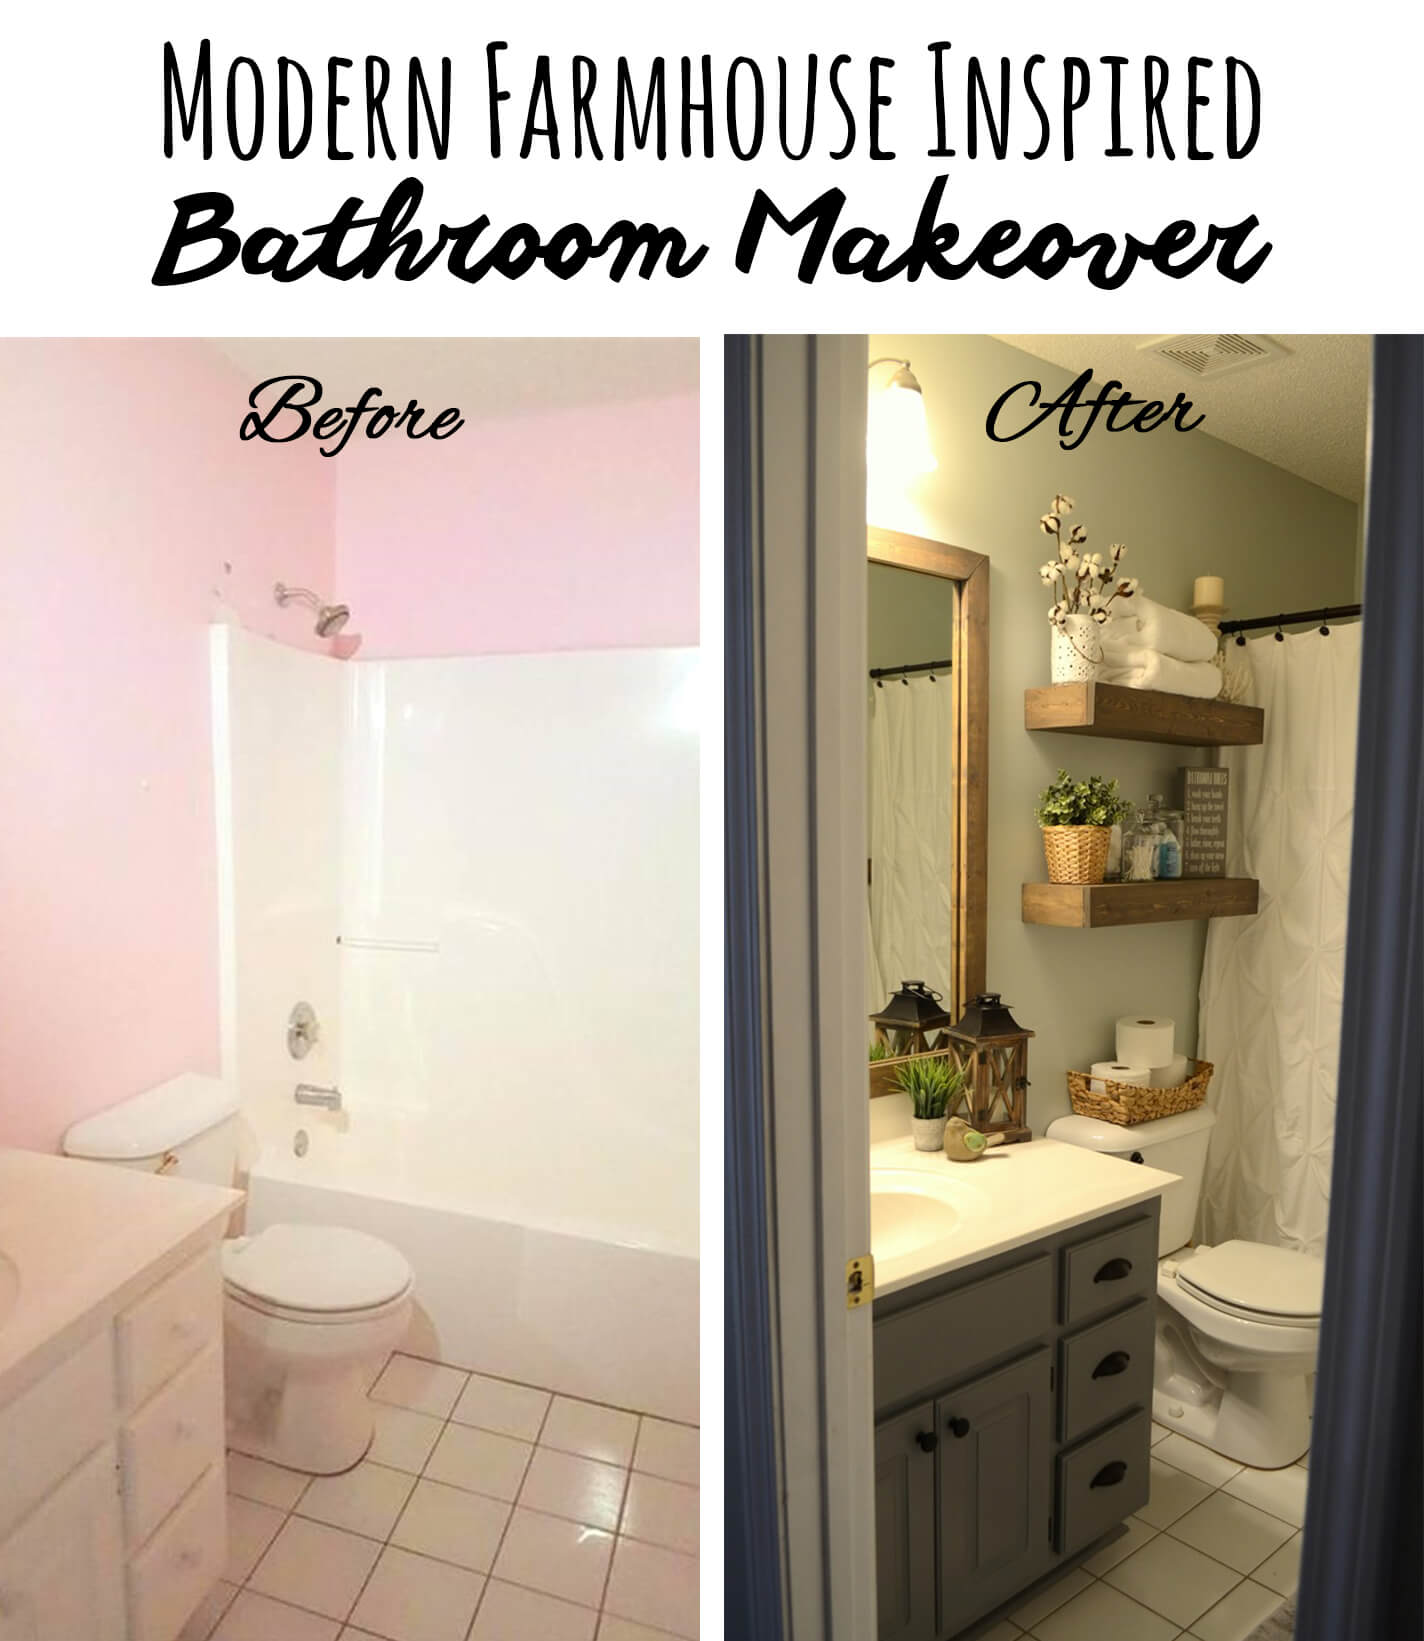 Awesome 28 Best Budget Friendly Bathroom Makeover Ideas And Designs Best Image Libraries Thycampuscom